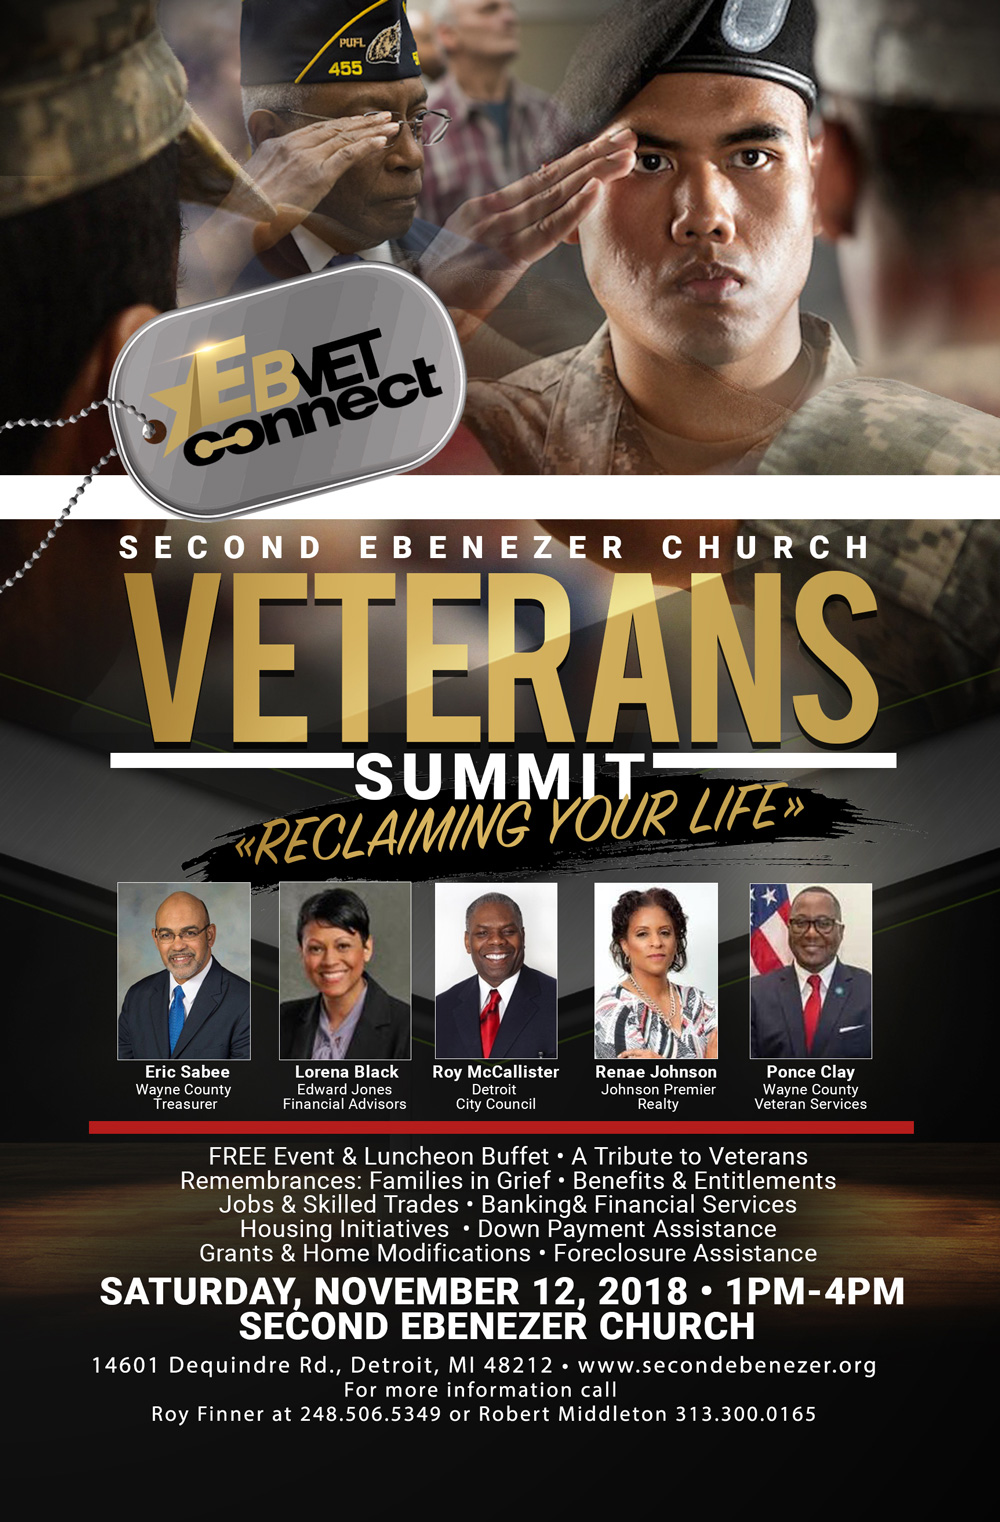 Veterans Summit 2018